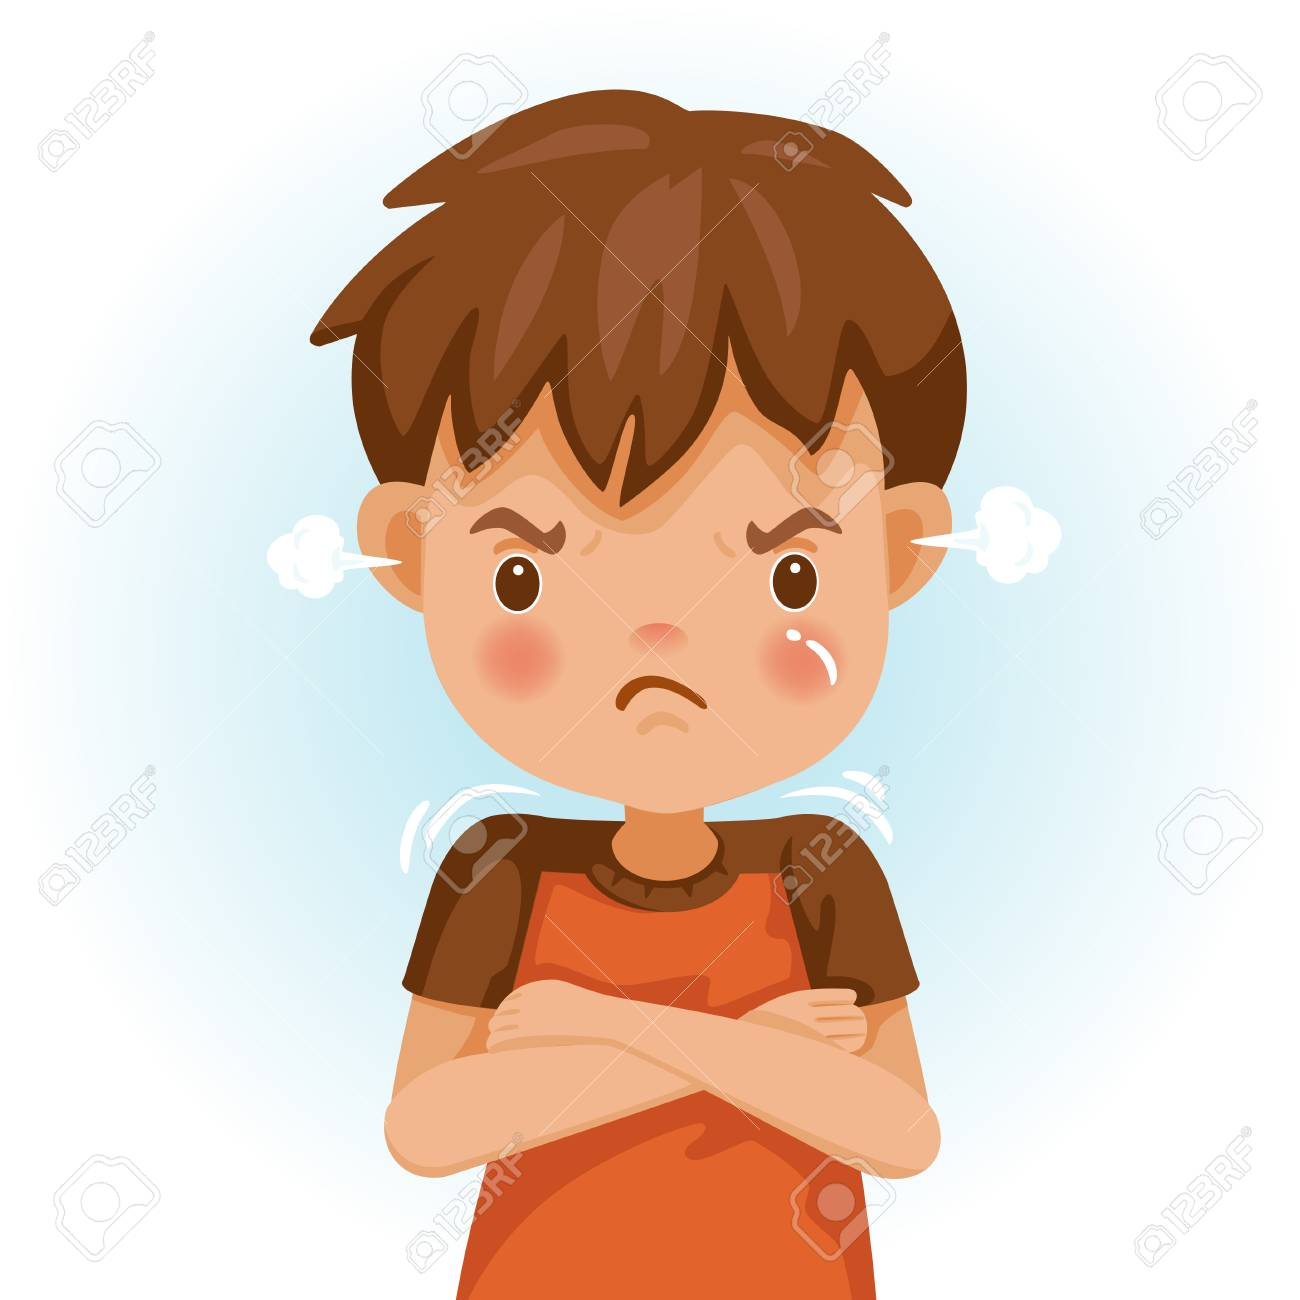 Angry Child The Boy In A Red Shirt Is Expressing Anger Excitement Royalty Free Cliparts Vectors And Stock Illustration Image 114807571